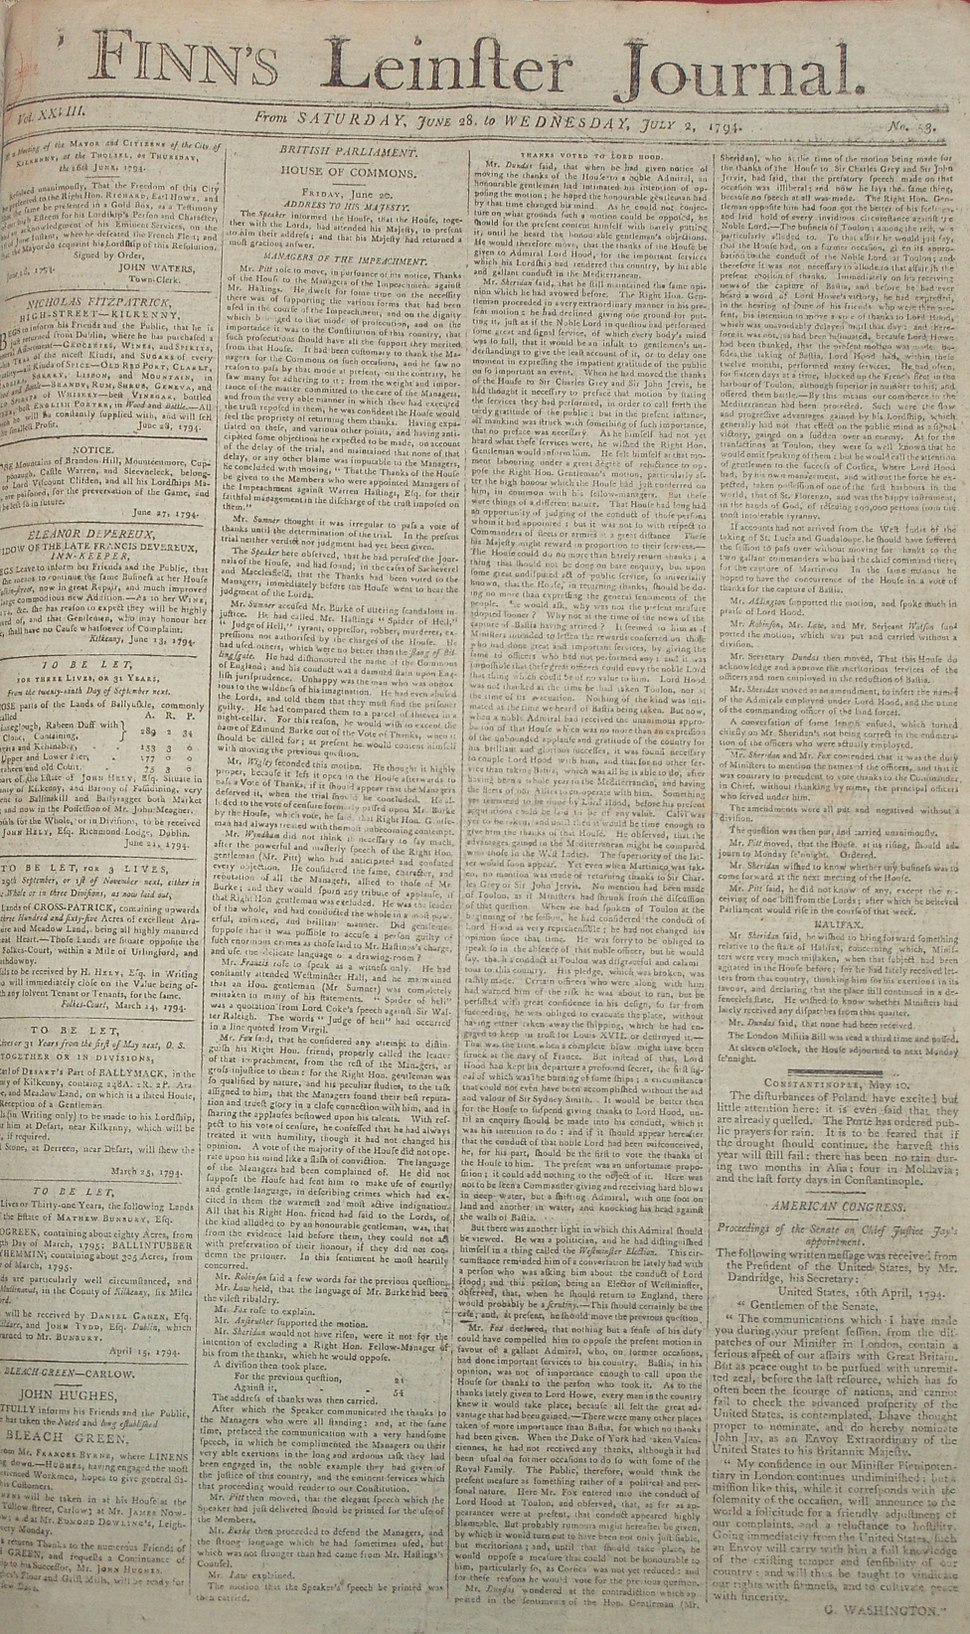 Finn's Leinster Journal 1794